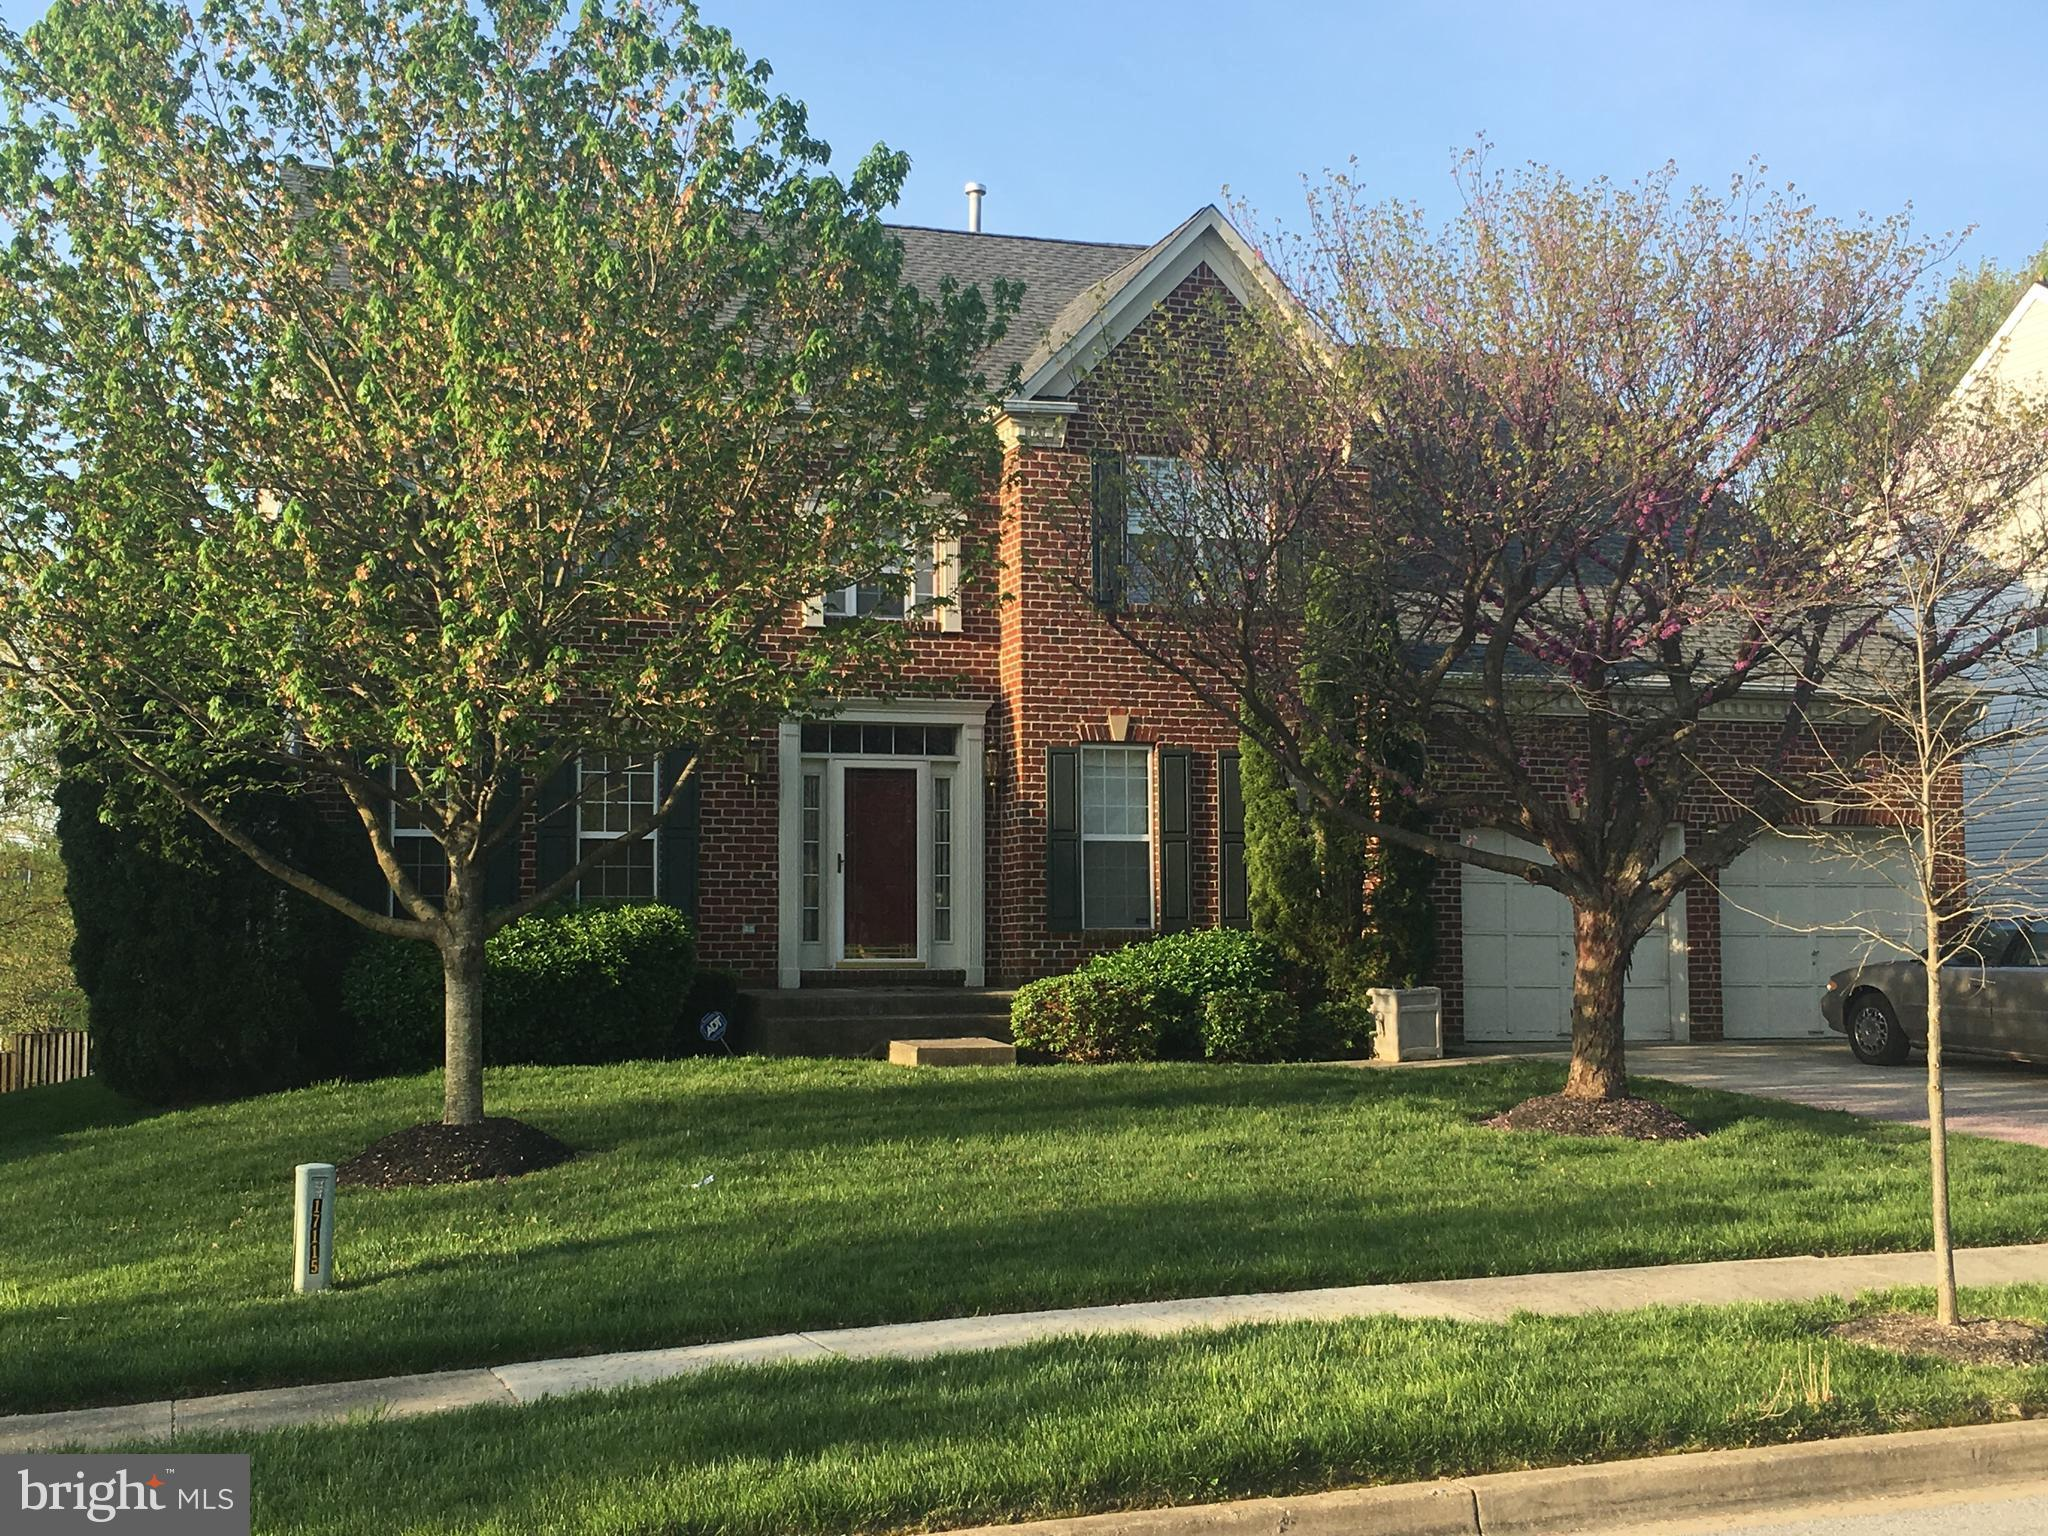 17115 ASPEN LEAF DRIVE, BOWIE, MD 20716